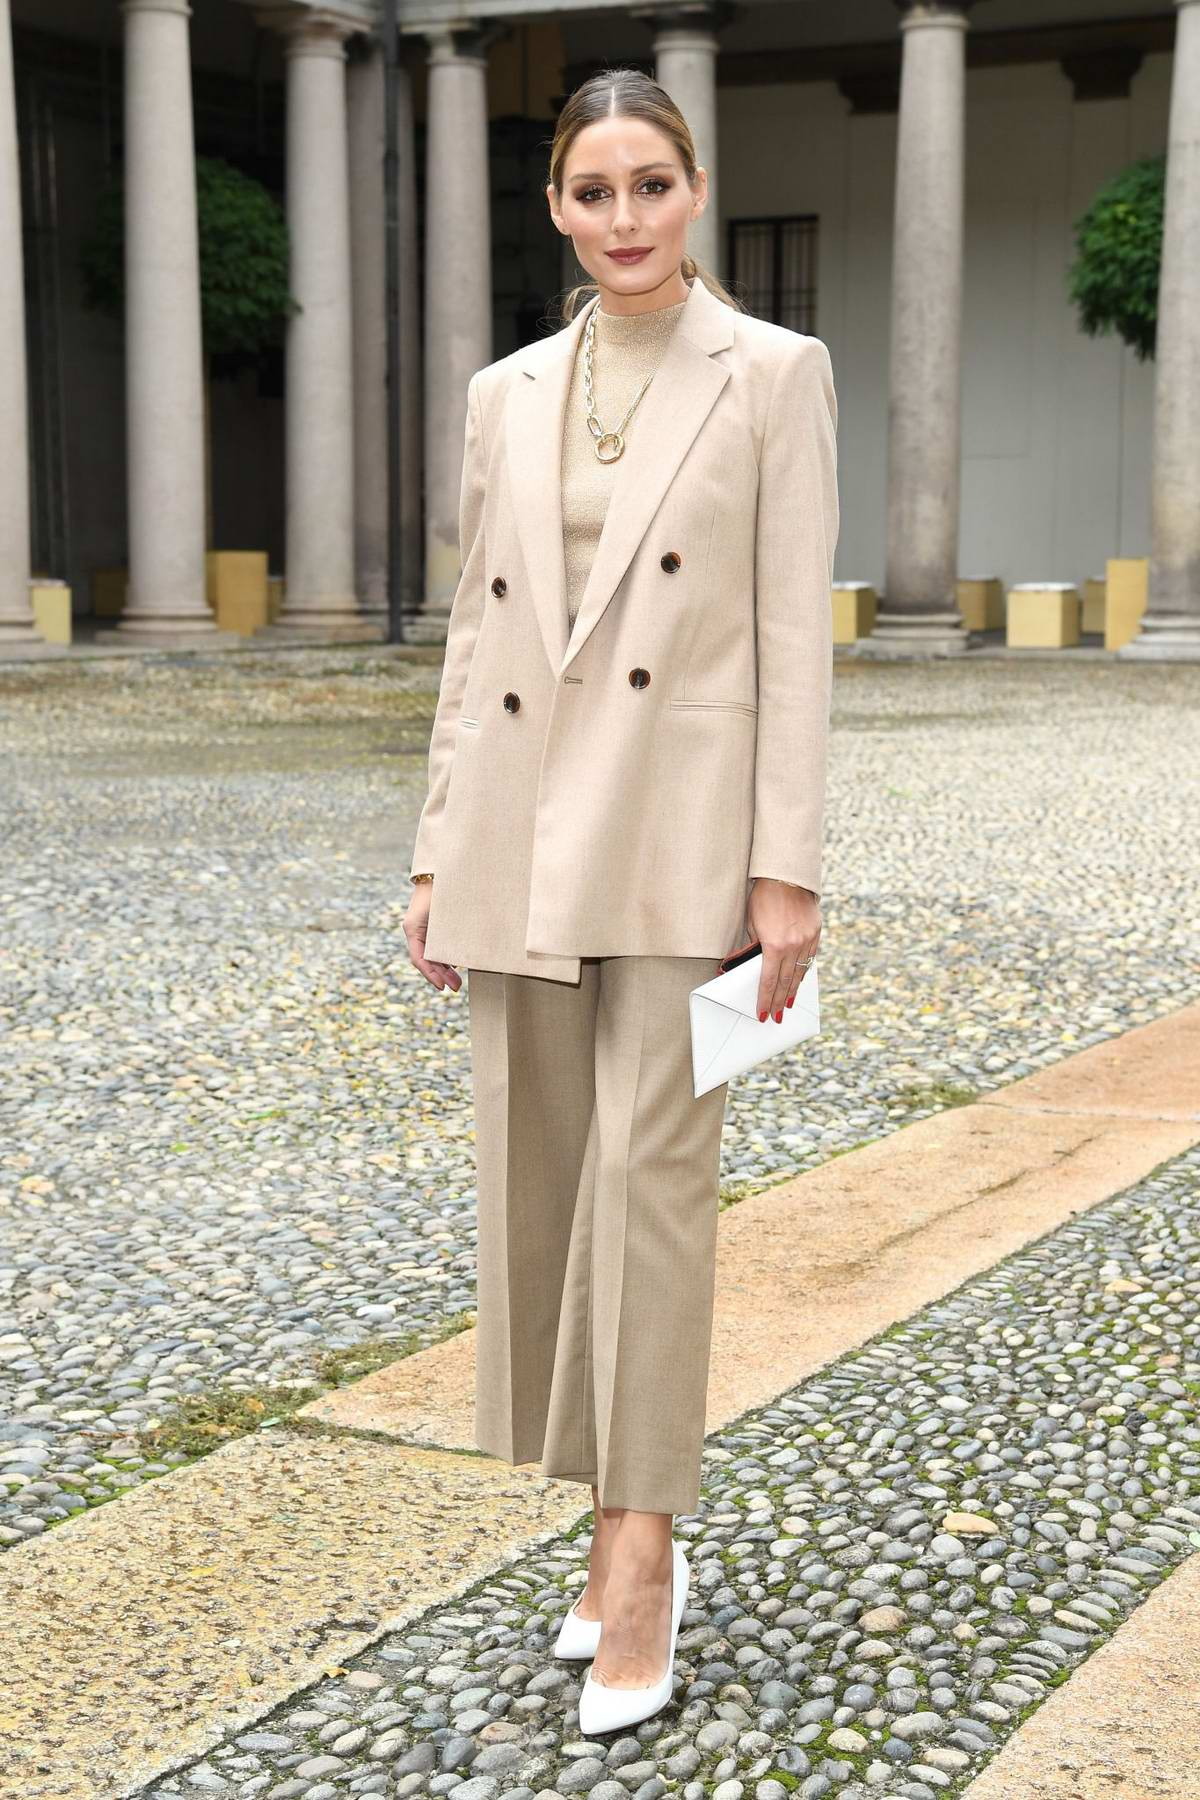 Olivia Palermo attends the Boss fashion show during the Milan Fashion Week in Milan, Italy